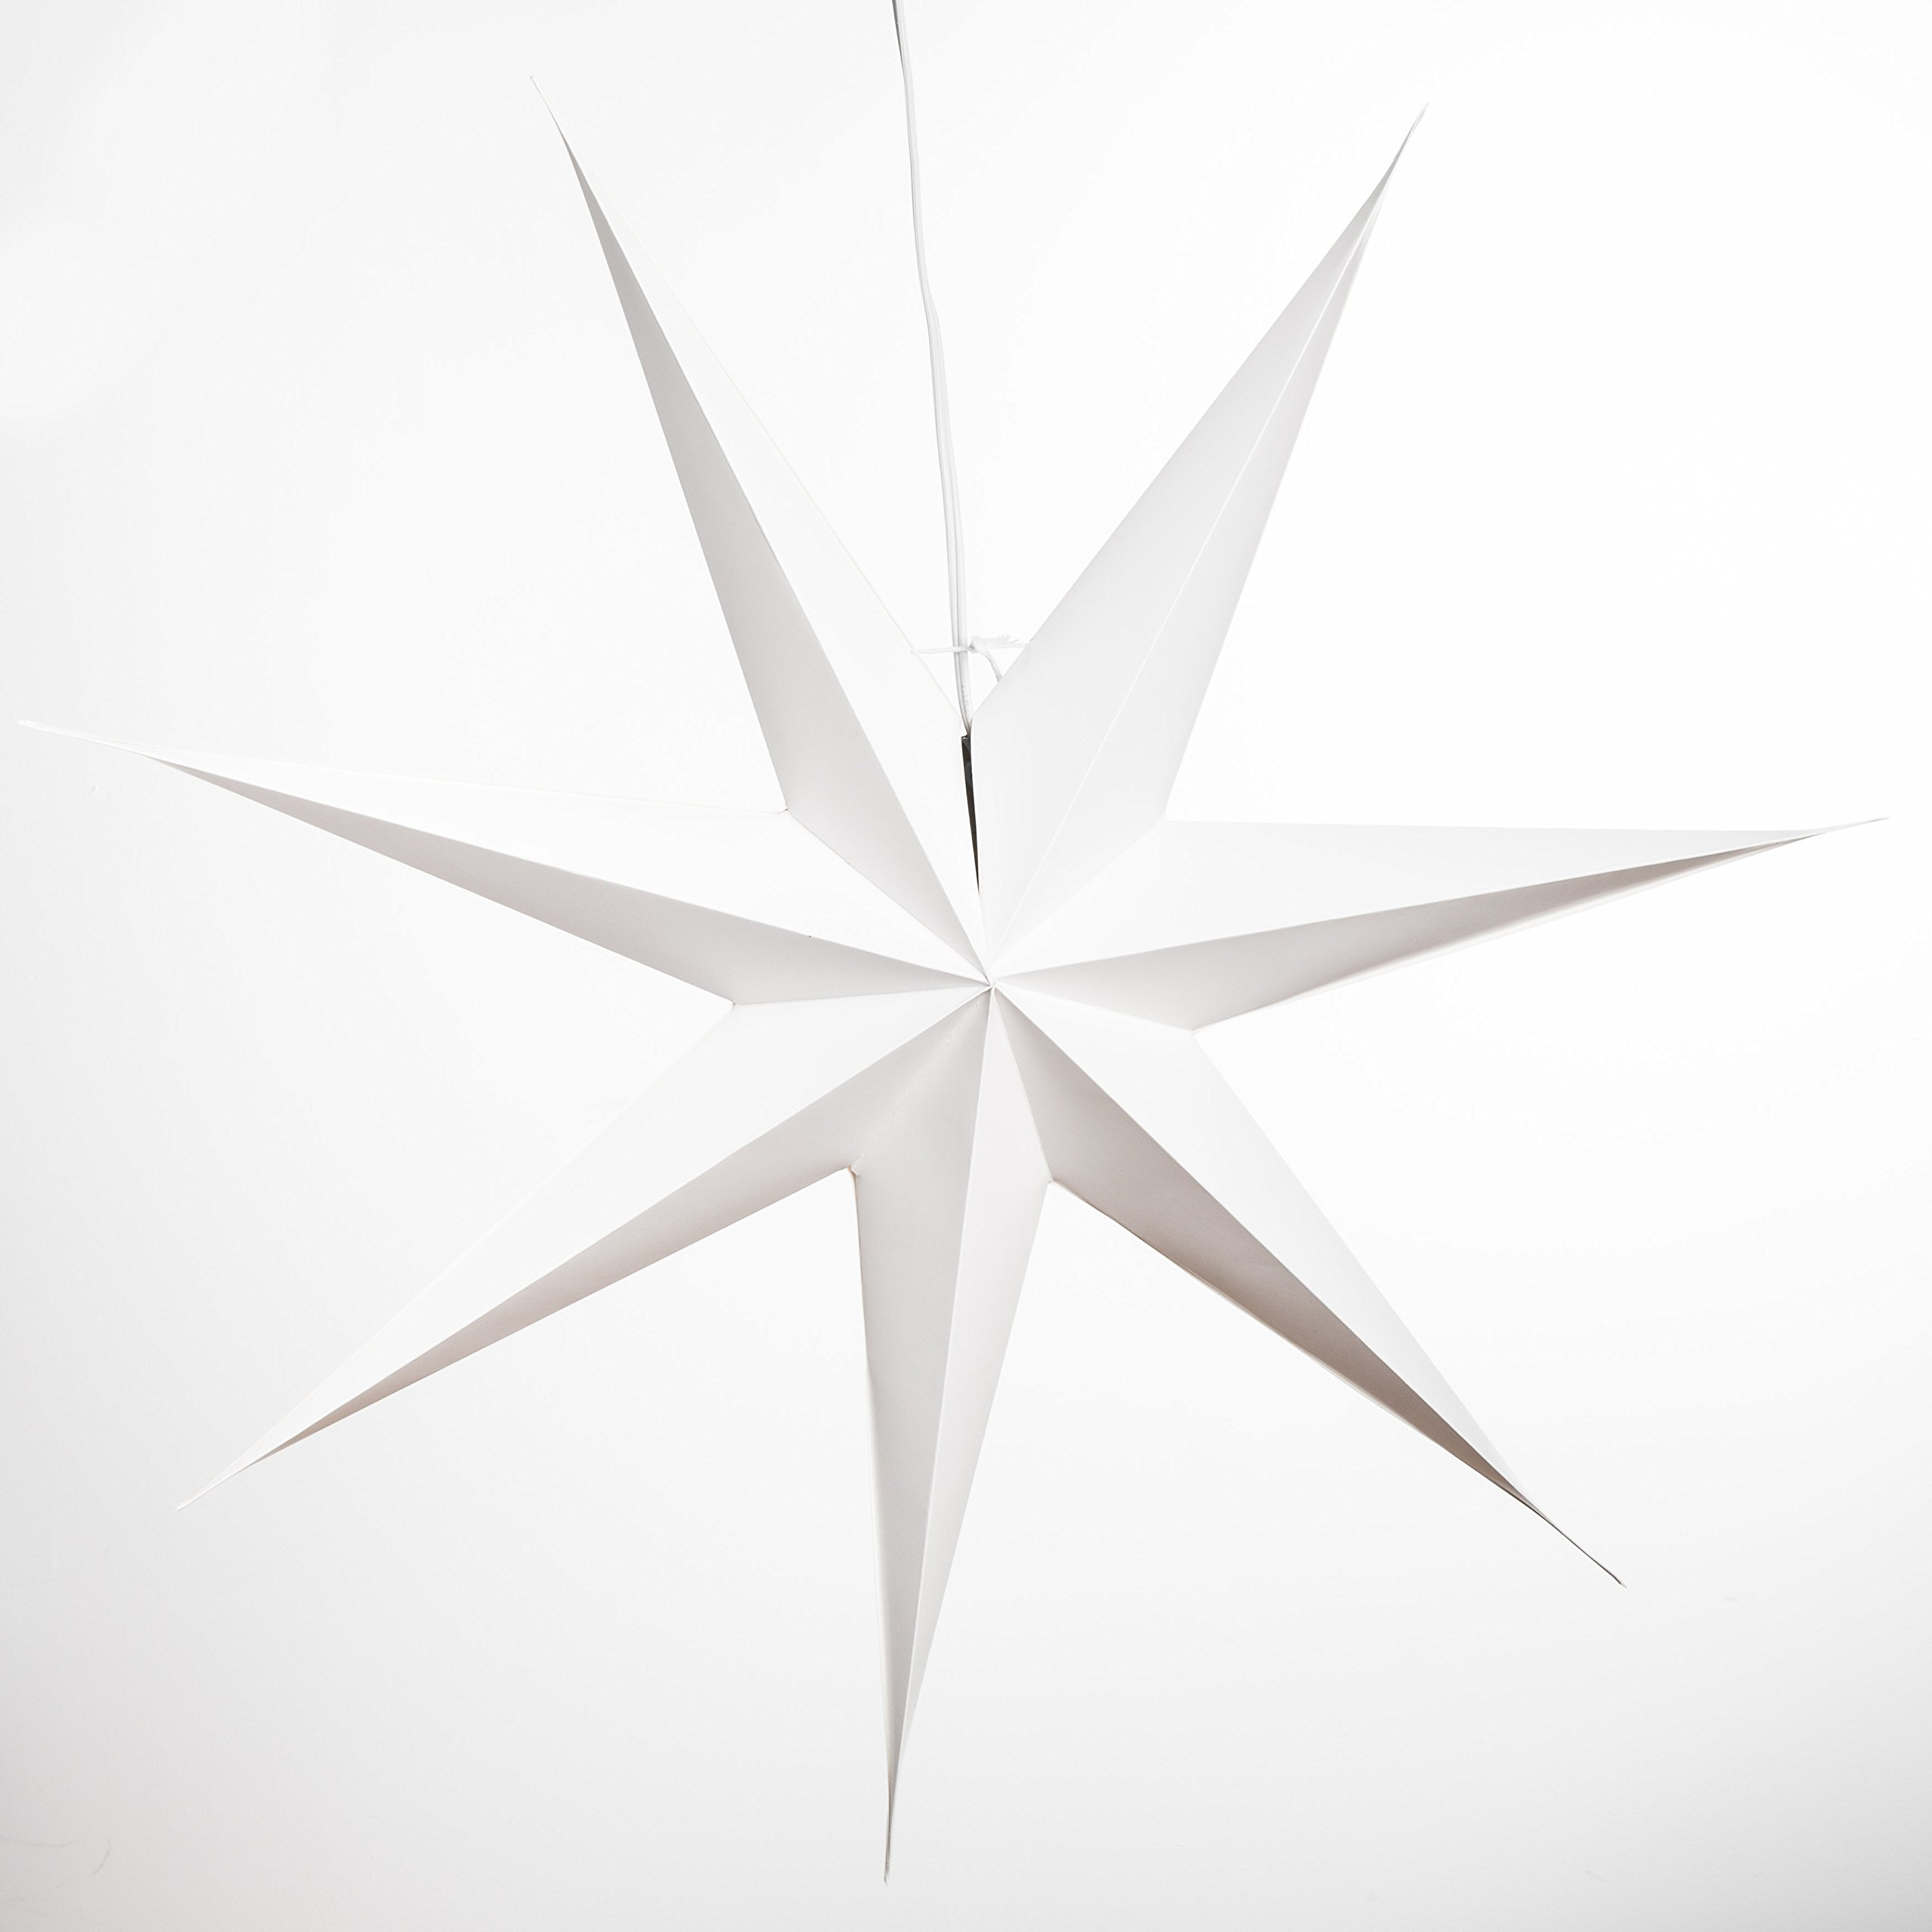 7 Pointed White Paper Star Light with 12 Foot Power Cord Included